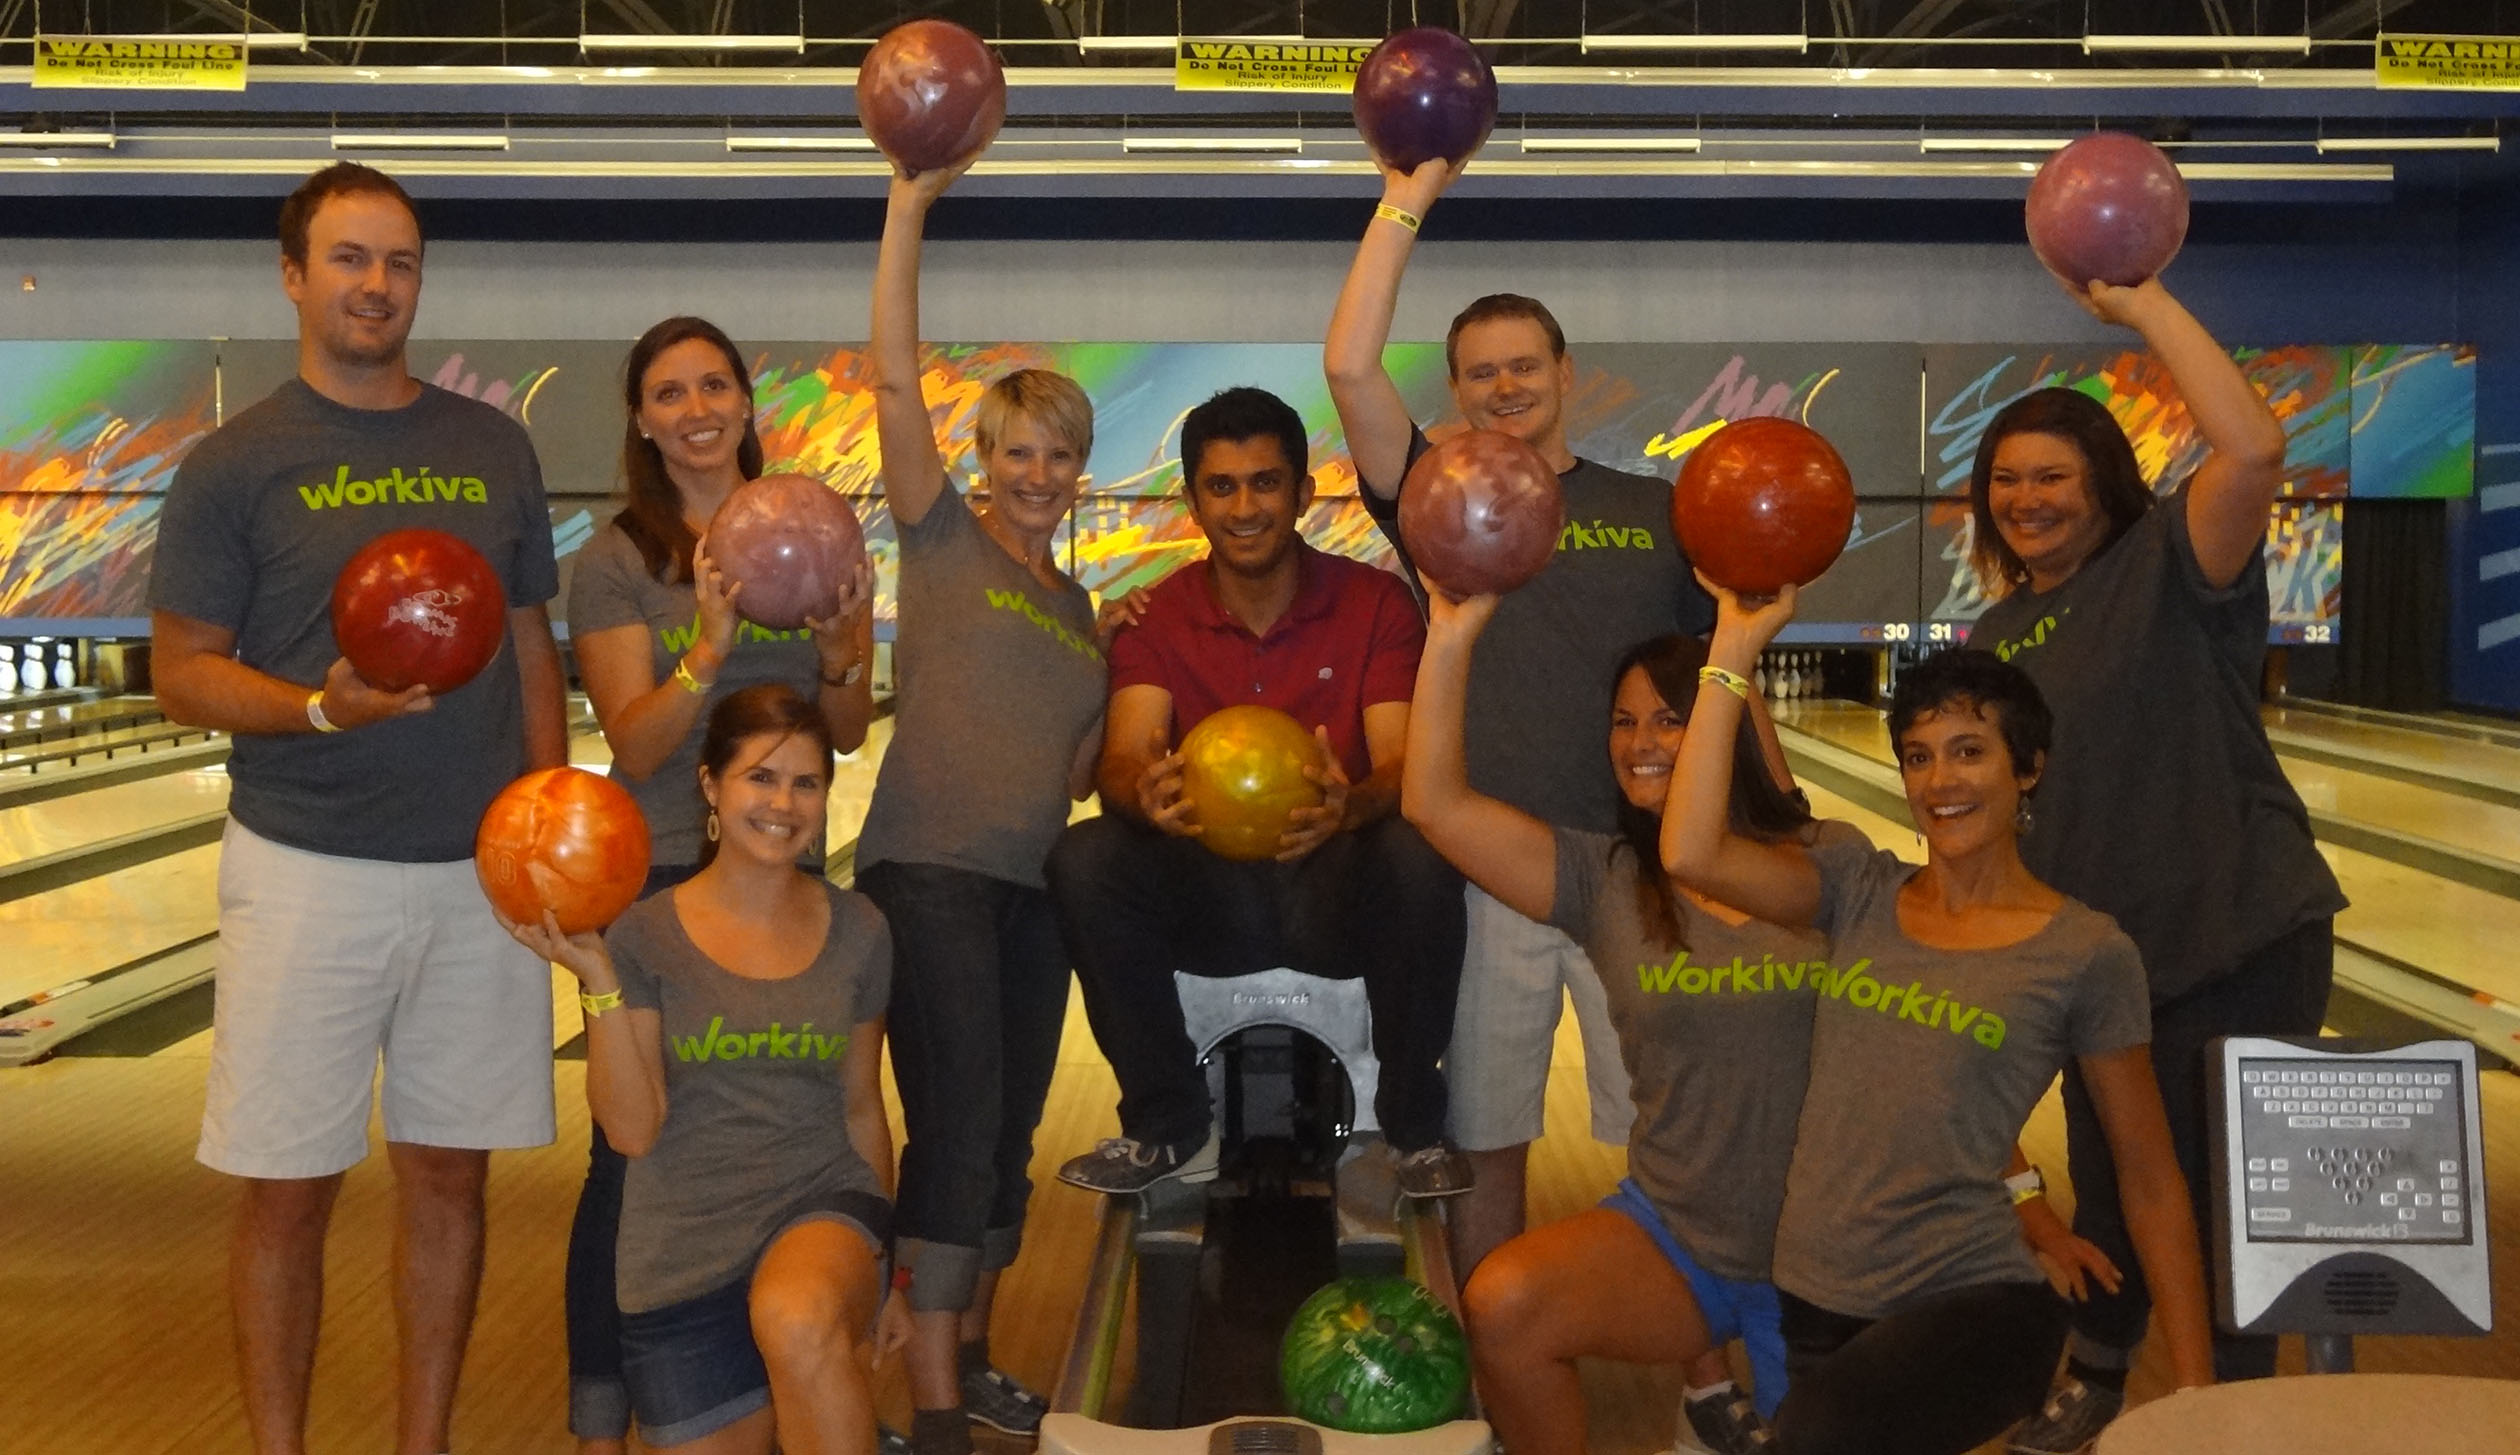 Workiva team bowling outing of Denver office, July 2014.